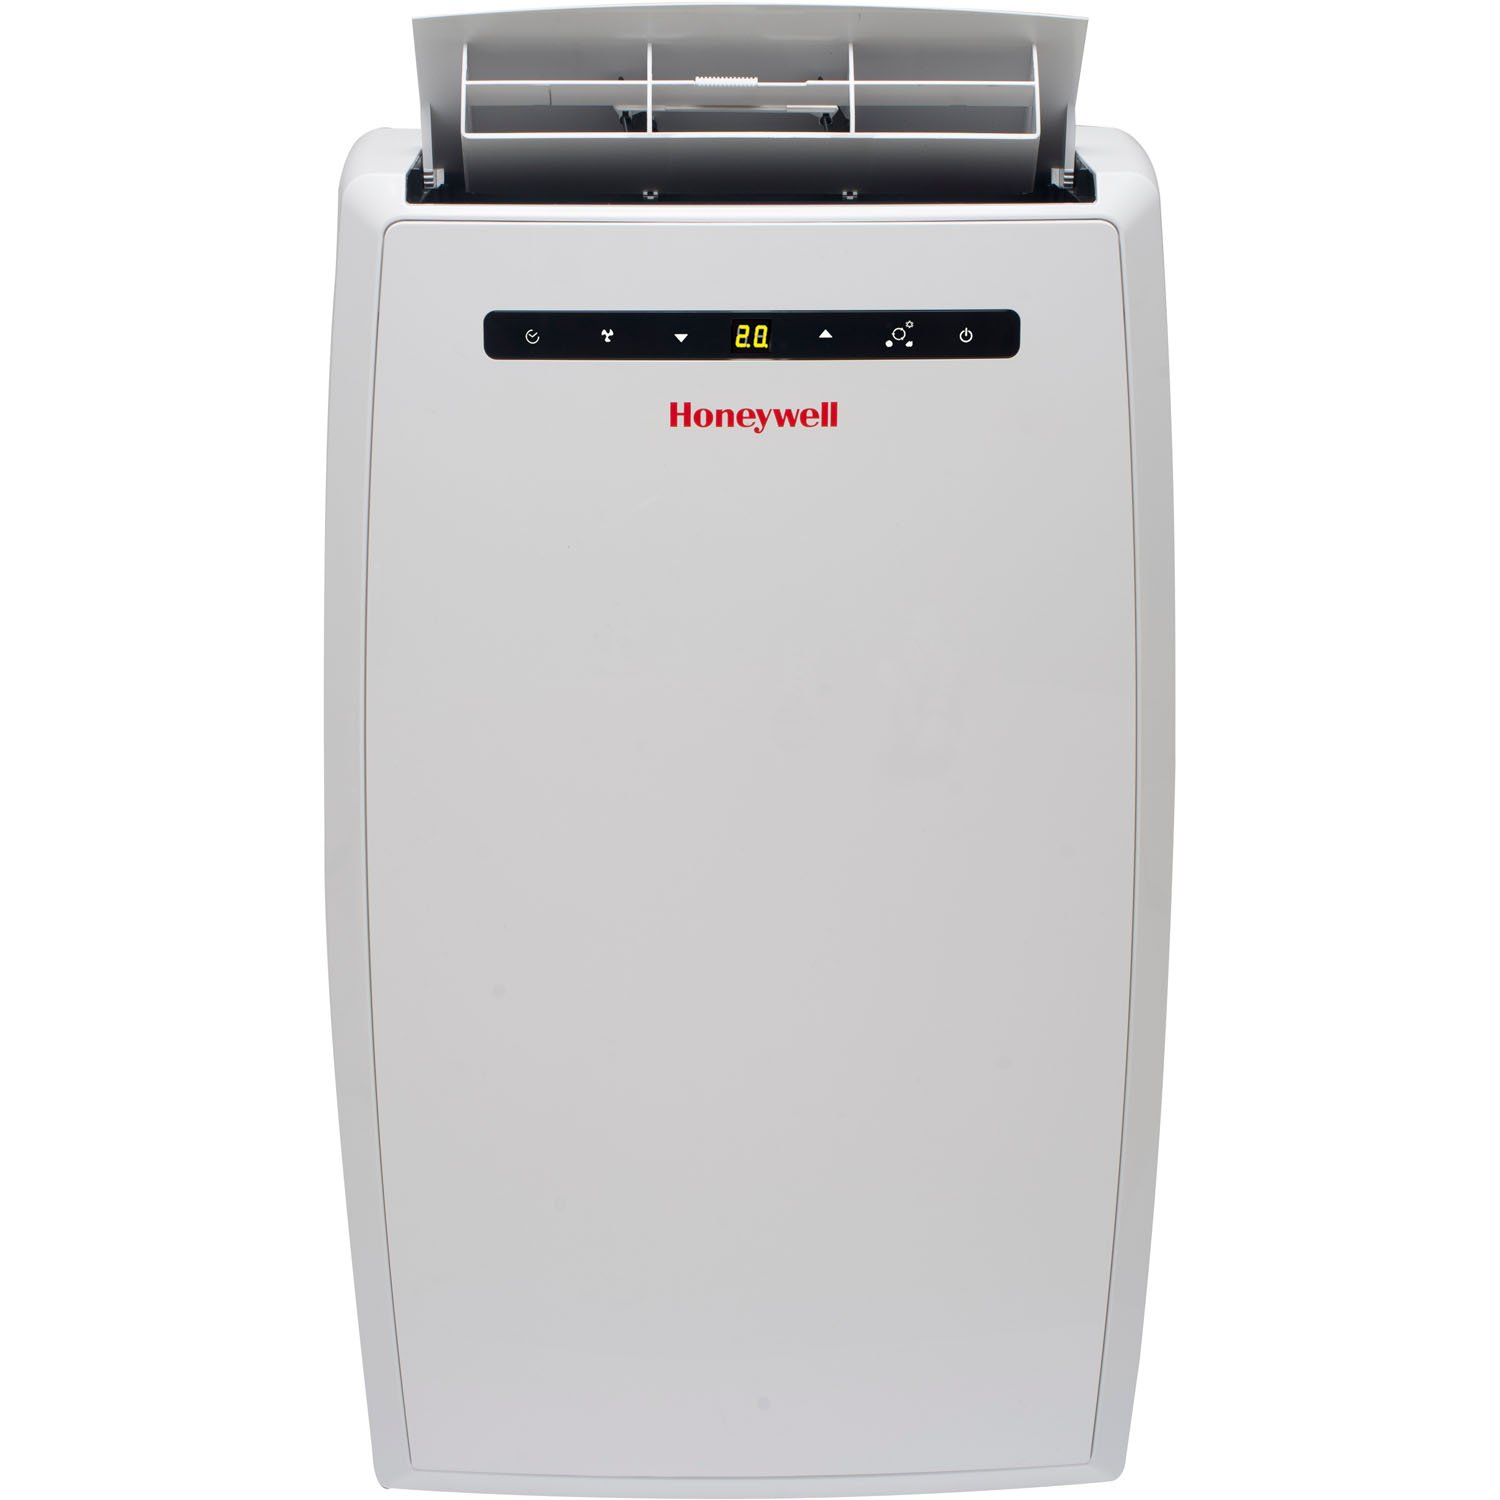 Honeywell MN10CESWW  Portable Air Conditioner with Dehumidifier & Fan for Rooms Up To 450 Sq. Ft. with Remote Control (White)